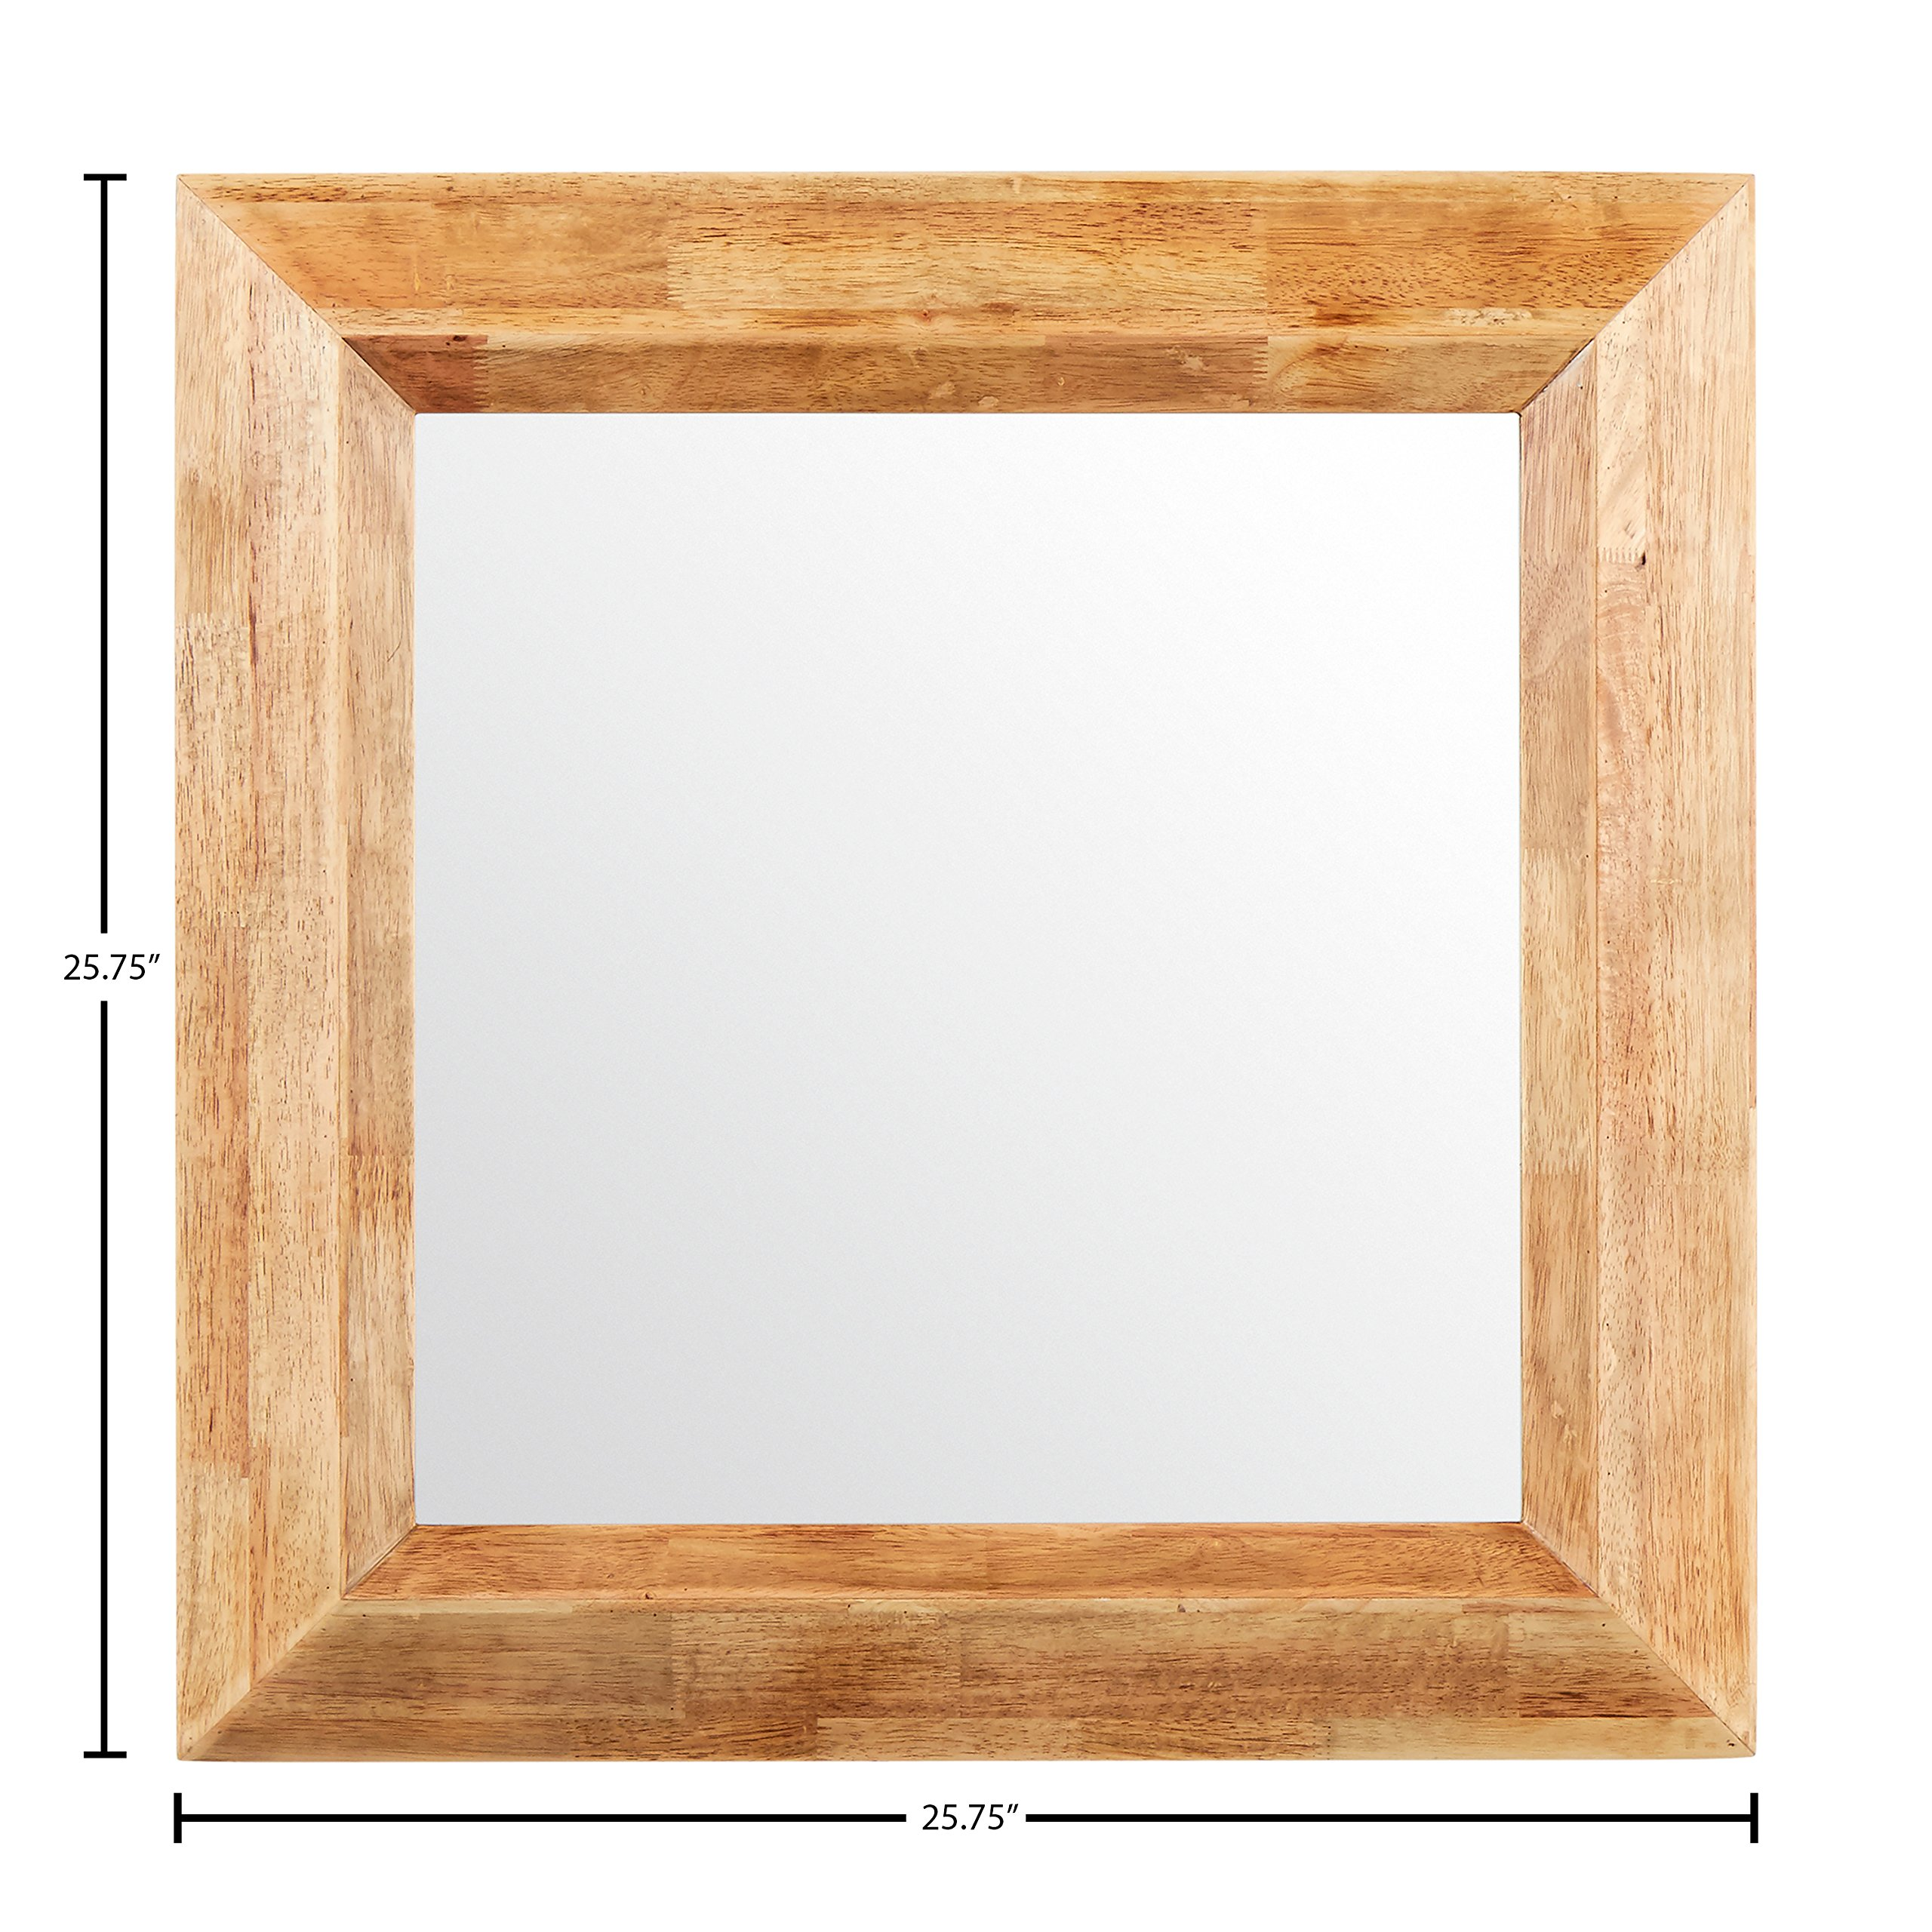 Stone & Beam Square Rustic Wood Frame Mirror, 25.75'' H, Natural by Stone & Beam (Image #5)